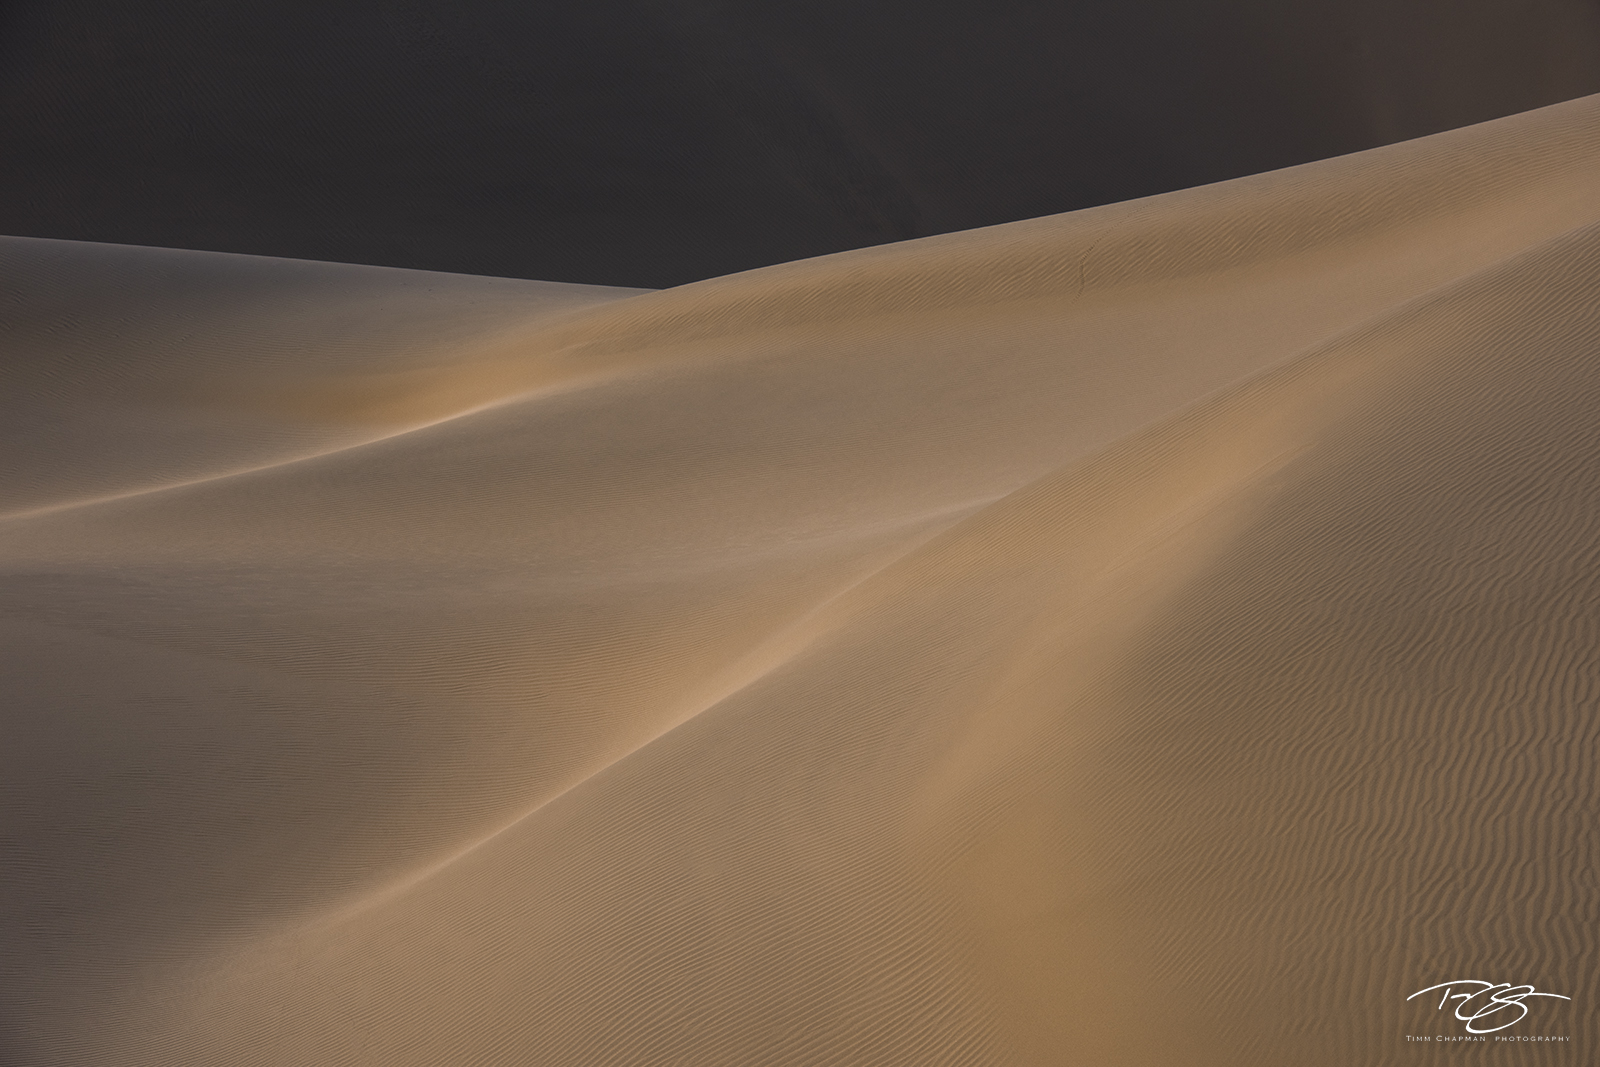 gobi desert, china, abstract, patterns, sand dune, sand, dune, desert, ebb, flow, gobi